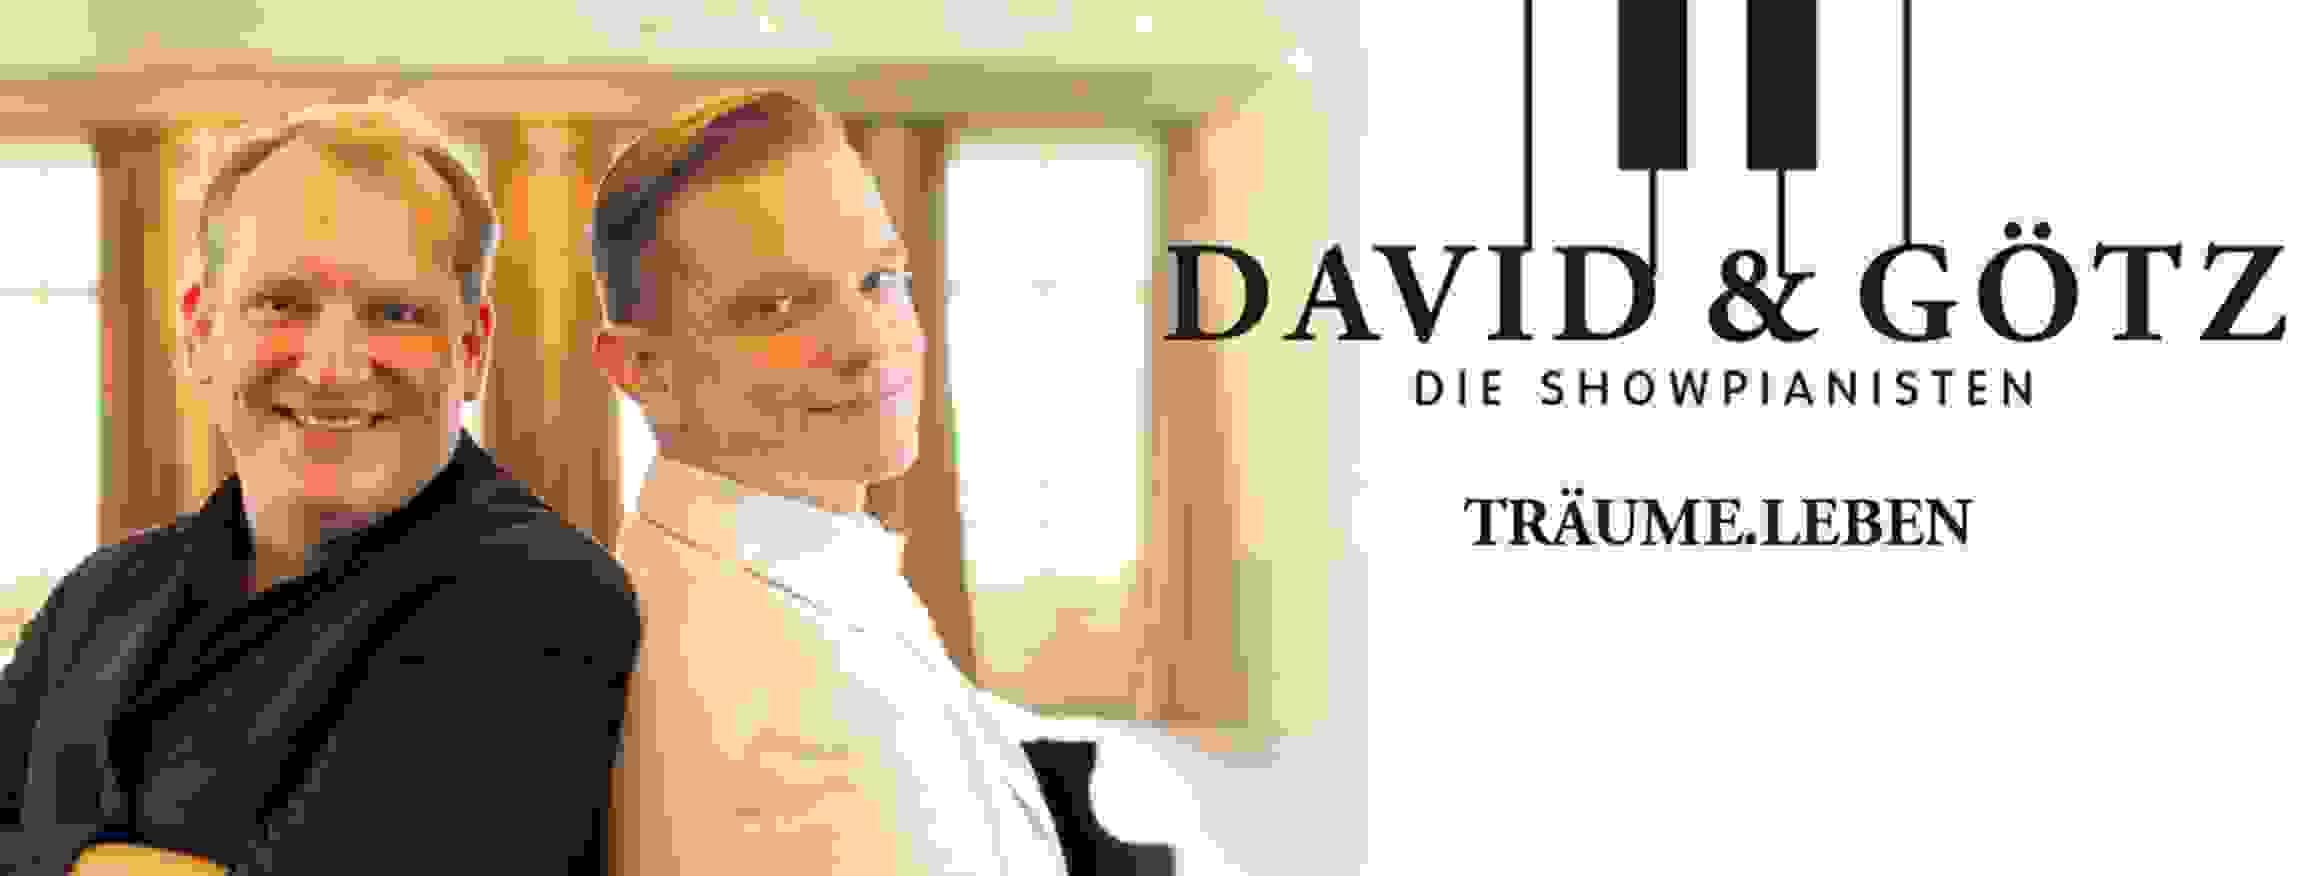 David und Götz - Header VA Website.jpg